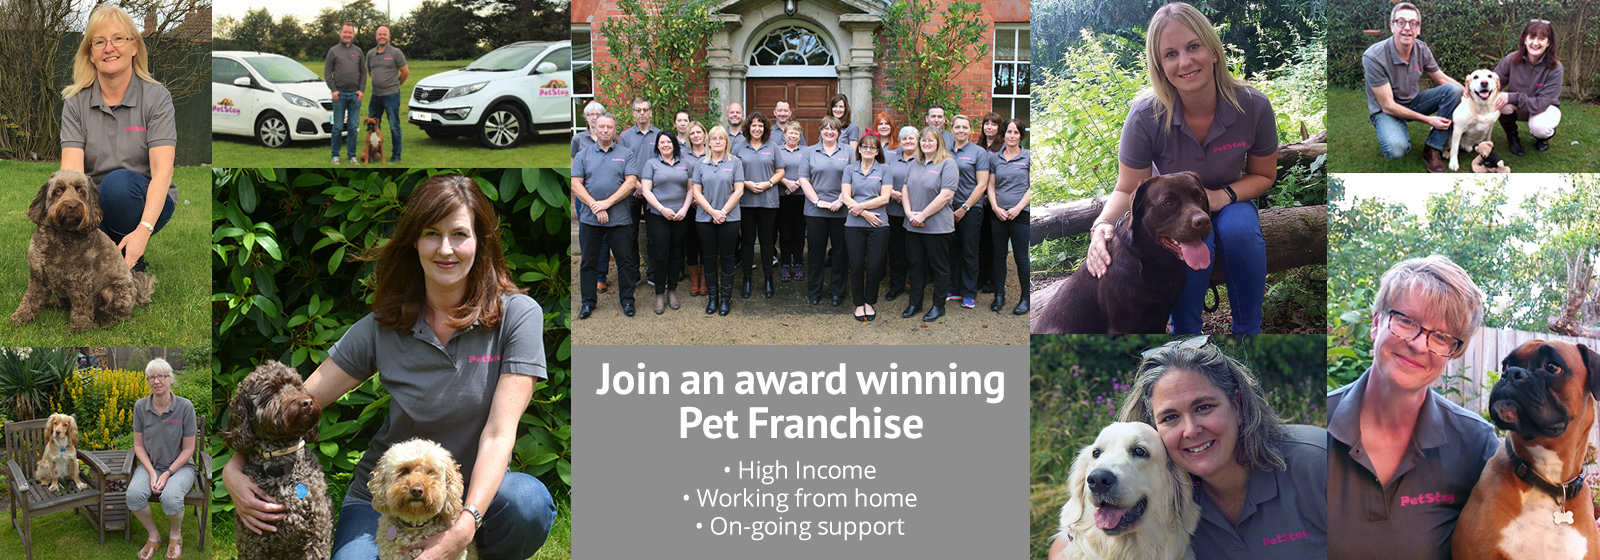 Award Winning Pet Franchise